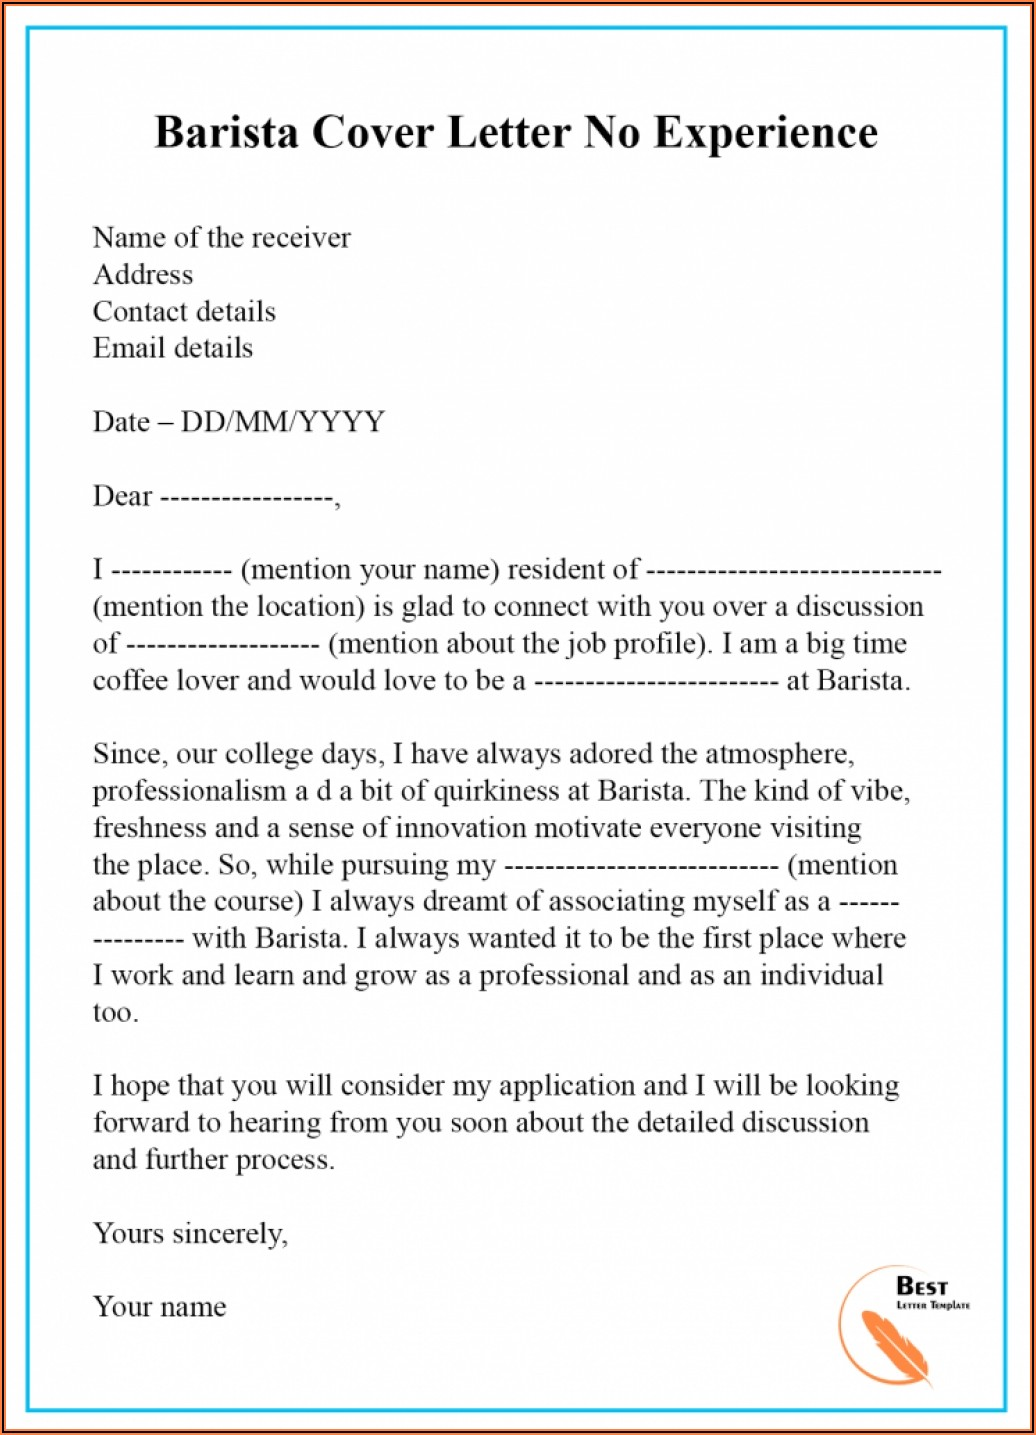 Cover Letter Sample For Students With No Experience The Perfect Job Cover Letter With No Experience 200+ Cover Letter